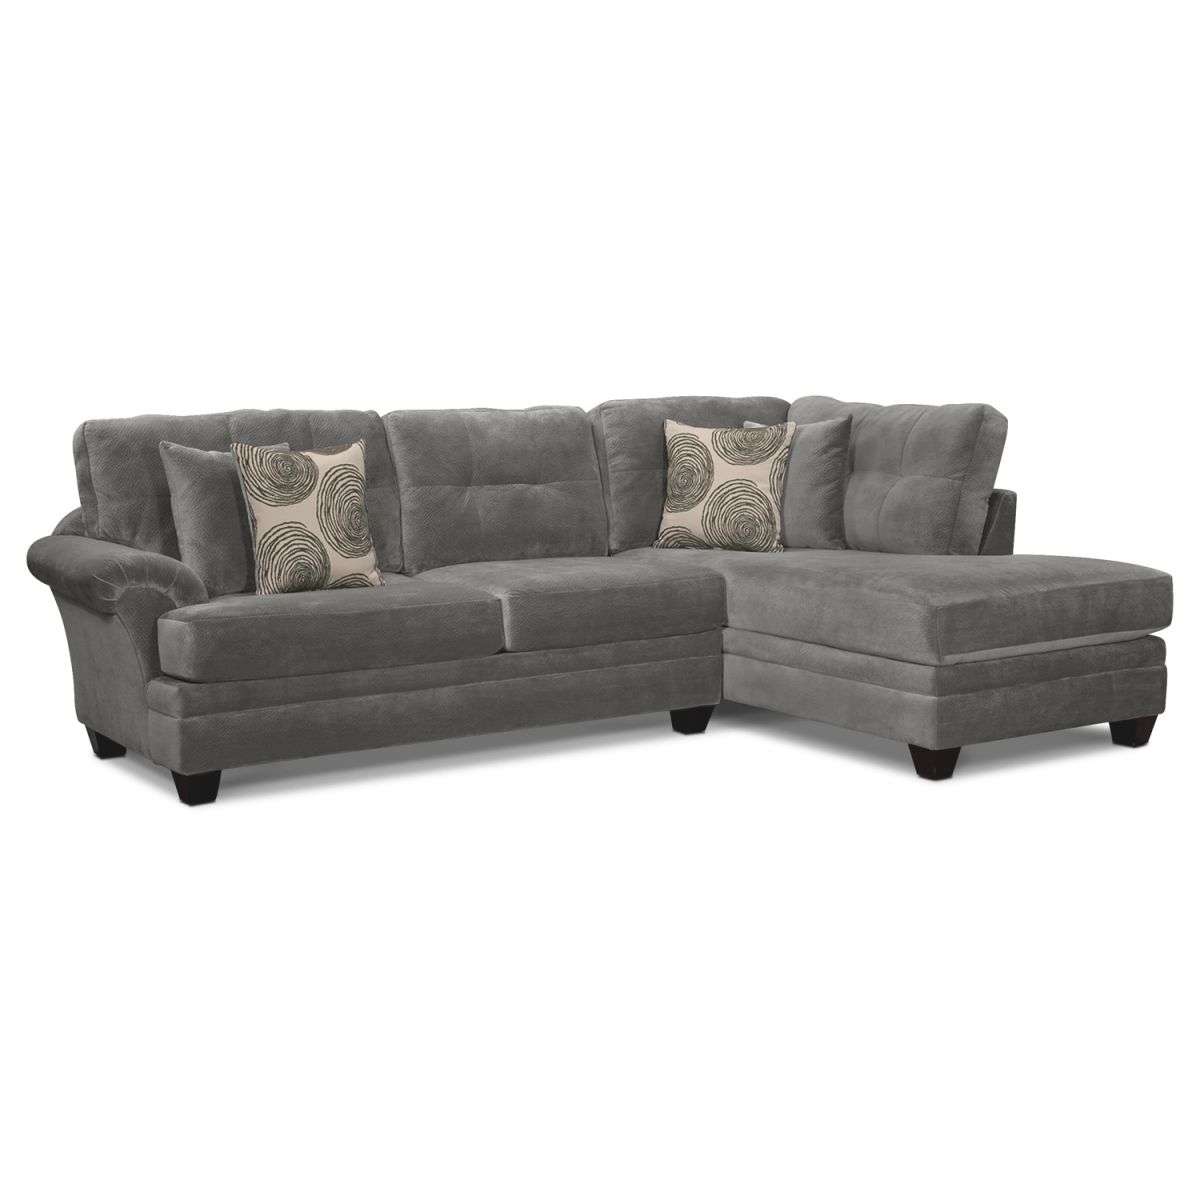 Cordelle 2-Piece Sectional With Chaise inside 2 Piece Sectional With Chaise